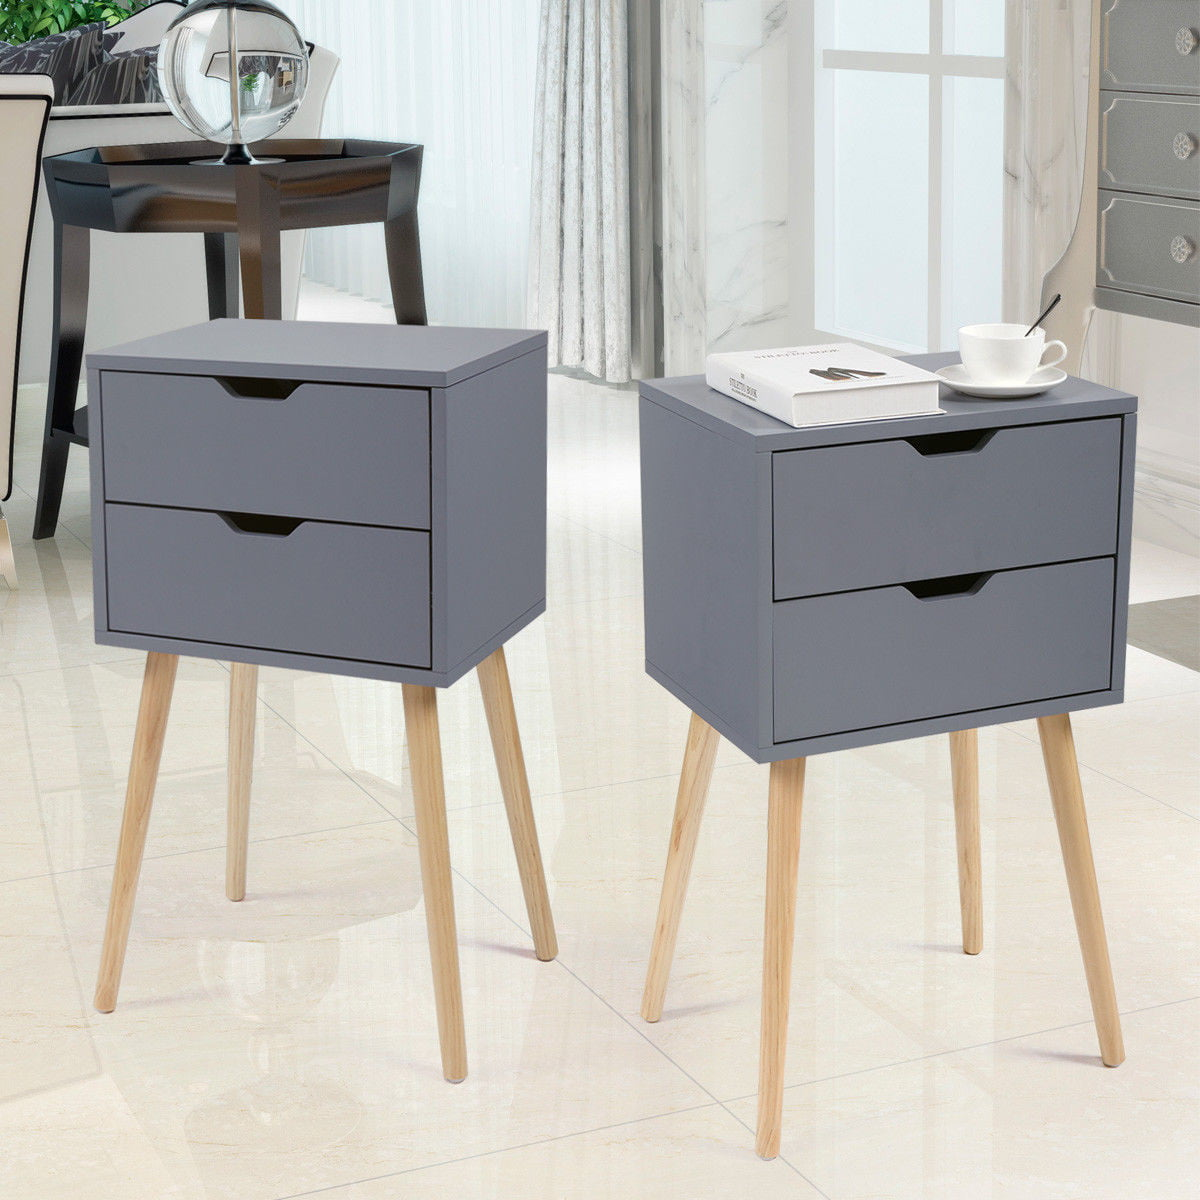 Topcobe Night Stand Set of 2, End Table with 2 Bin Drawer ...